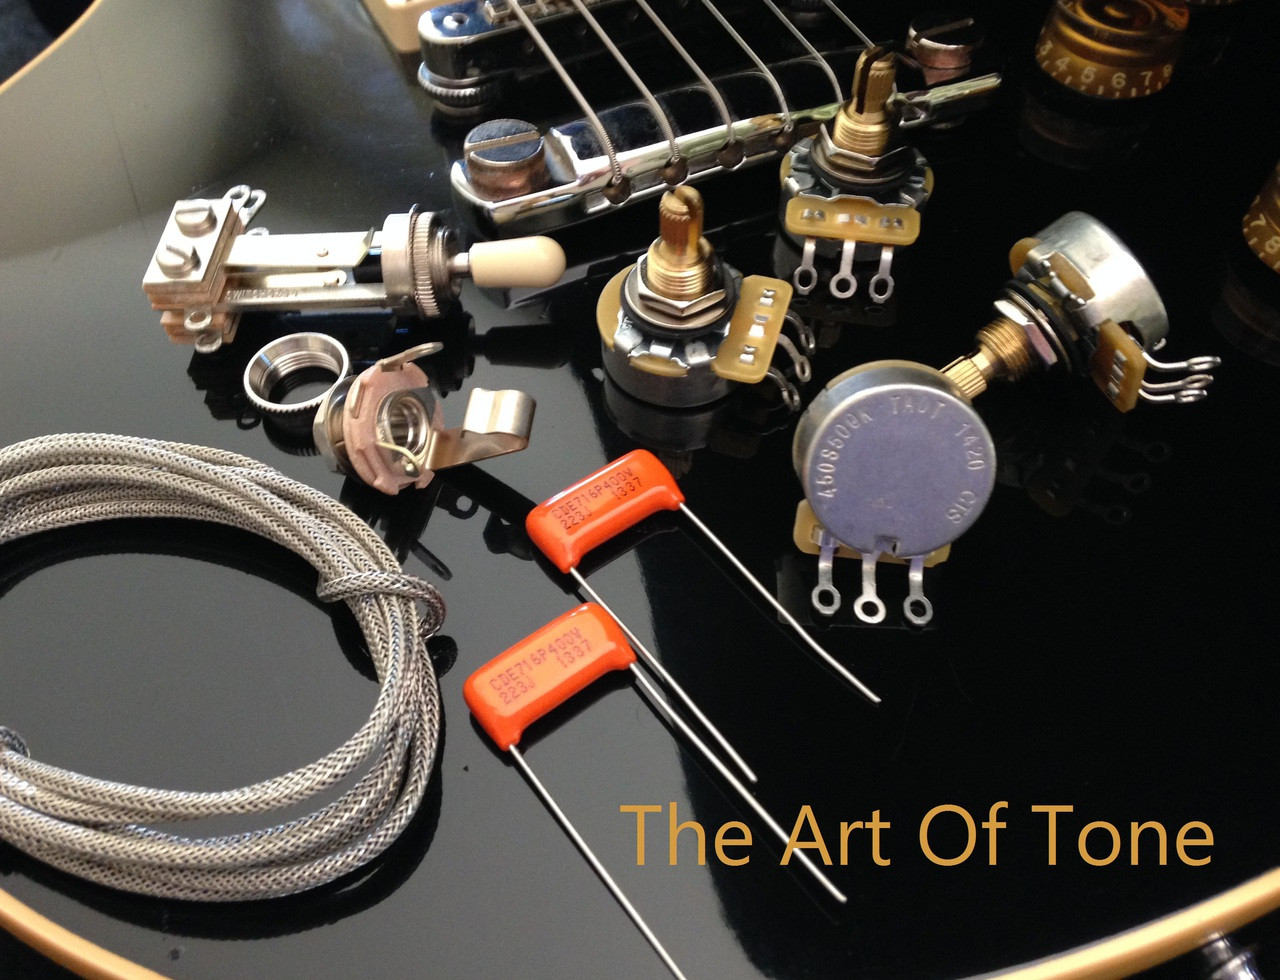 hight resolution of taot gibson les paul wiring kit short shaft orange drop caps the art of